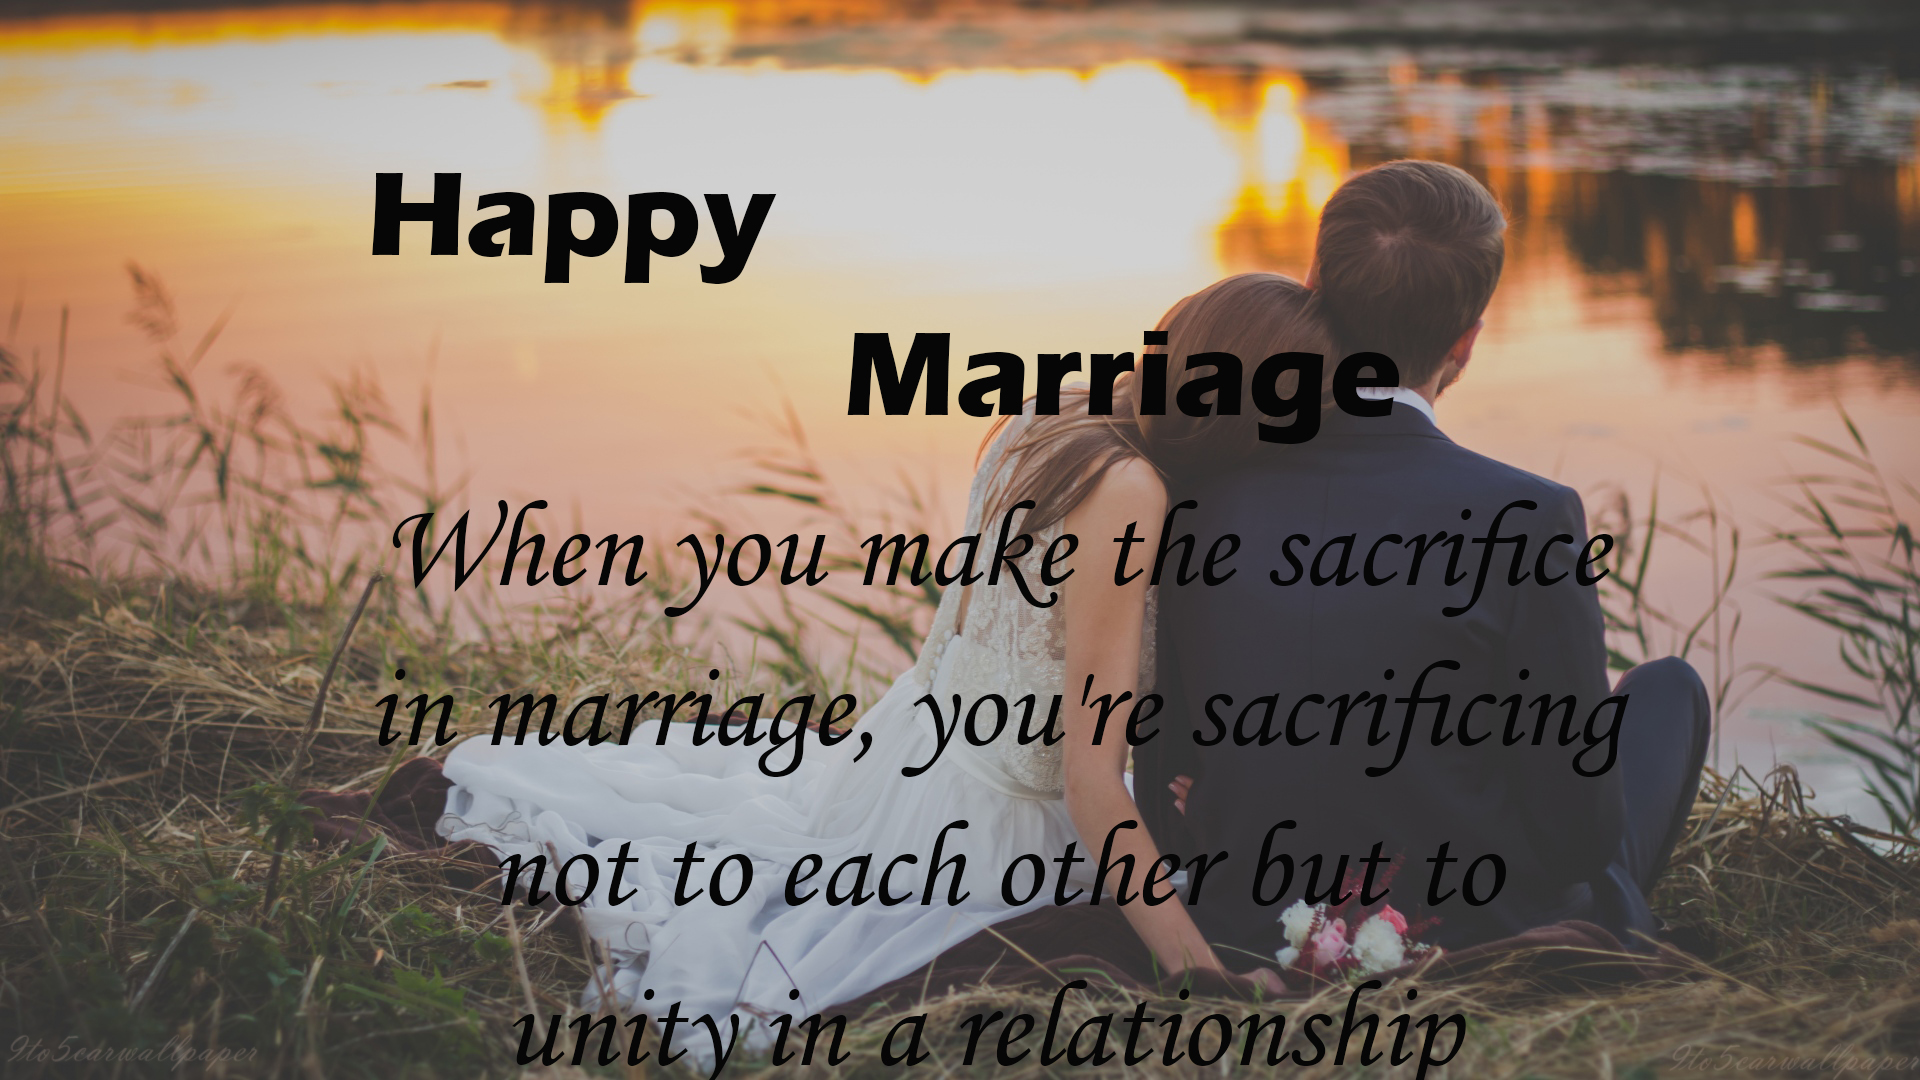 happy-marriage-wishes-quotes-images-hd-wallpapers-2017